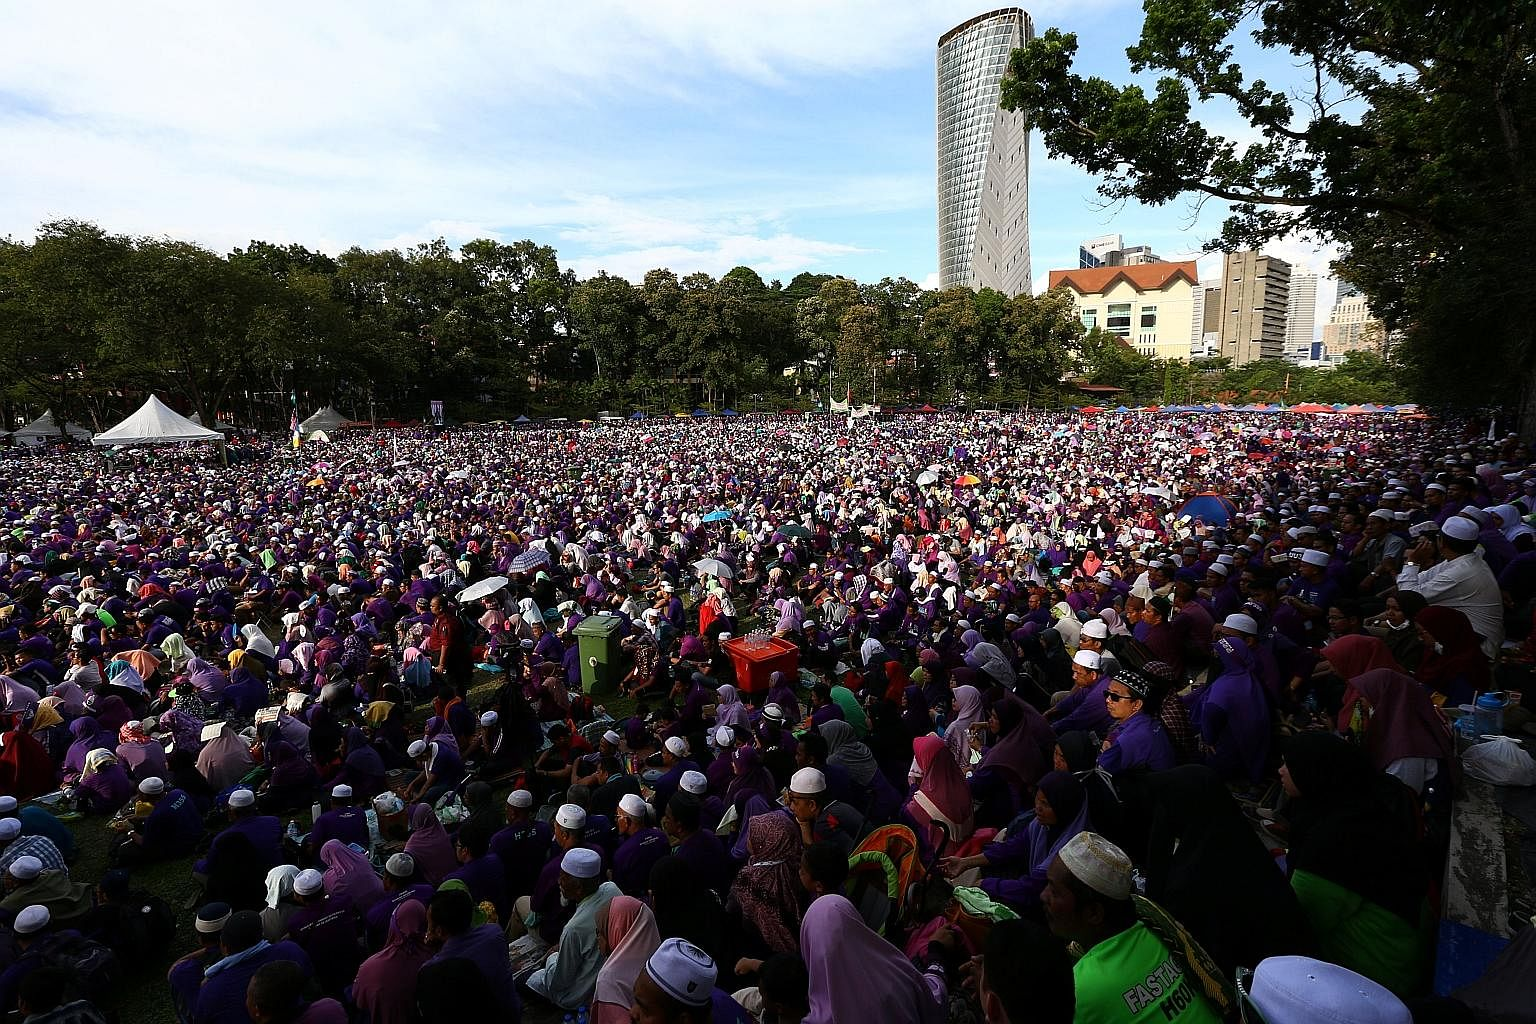 A crowd at a rally to support the adoption of a strict Islamic penal code at Padang Merbok in Kuala Lumpur last month. Umno, the dominant component of the Barisan Nasional coalition, does not have enough votes to push the Bill through Parliament. But